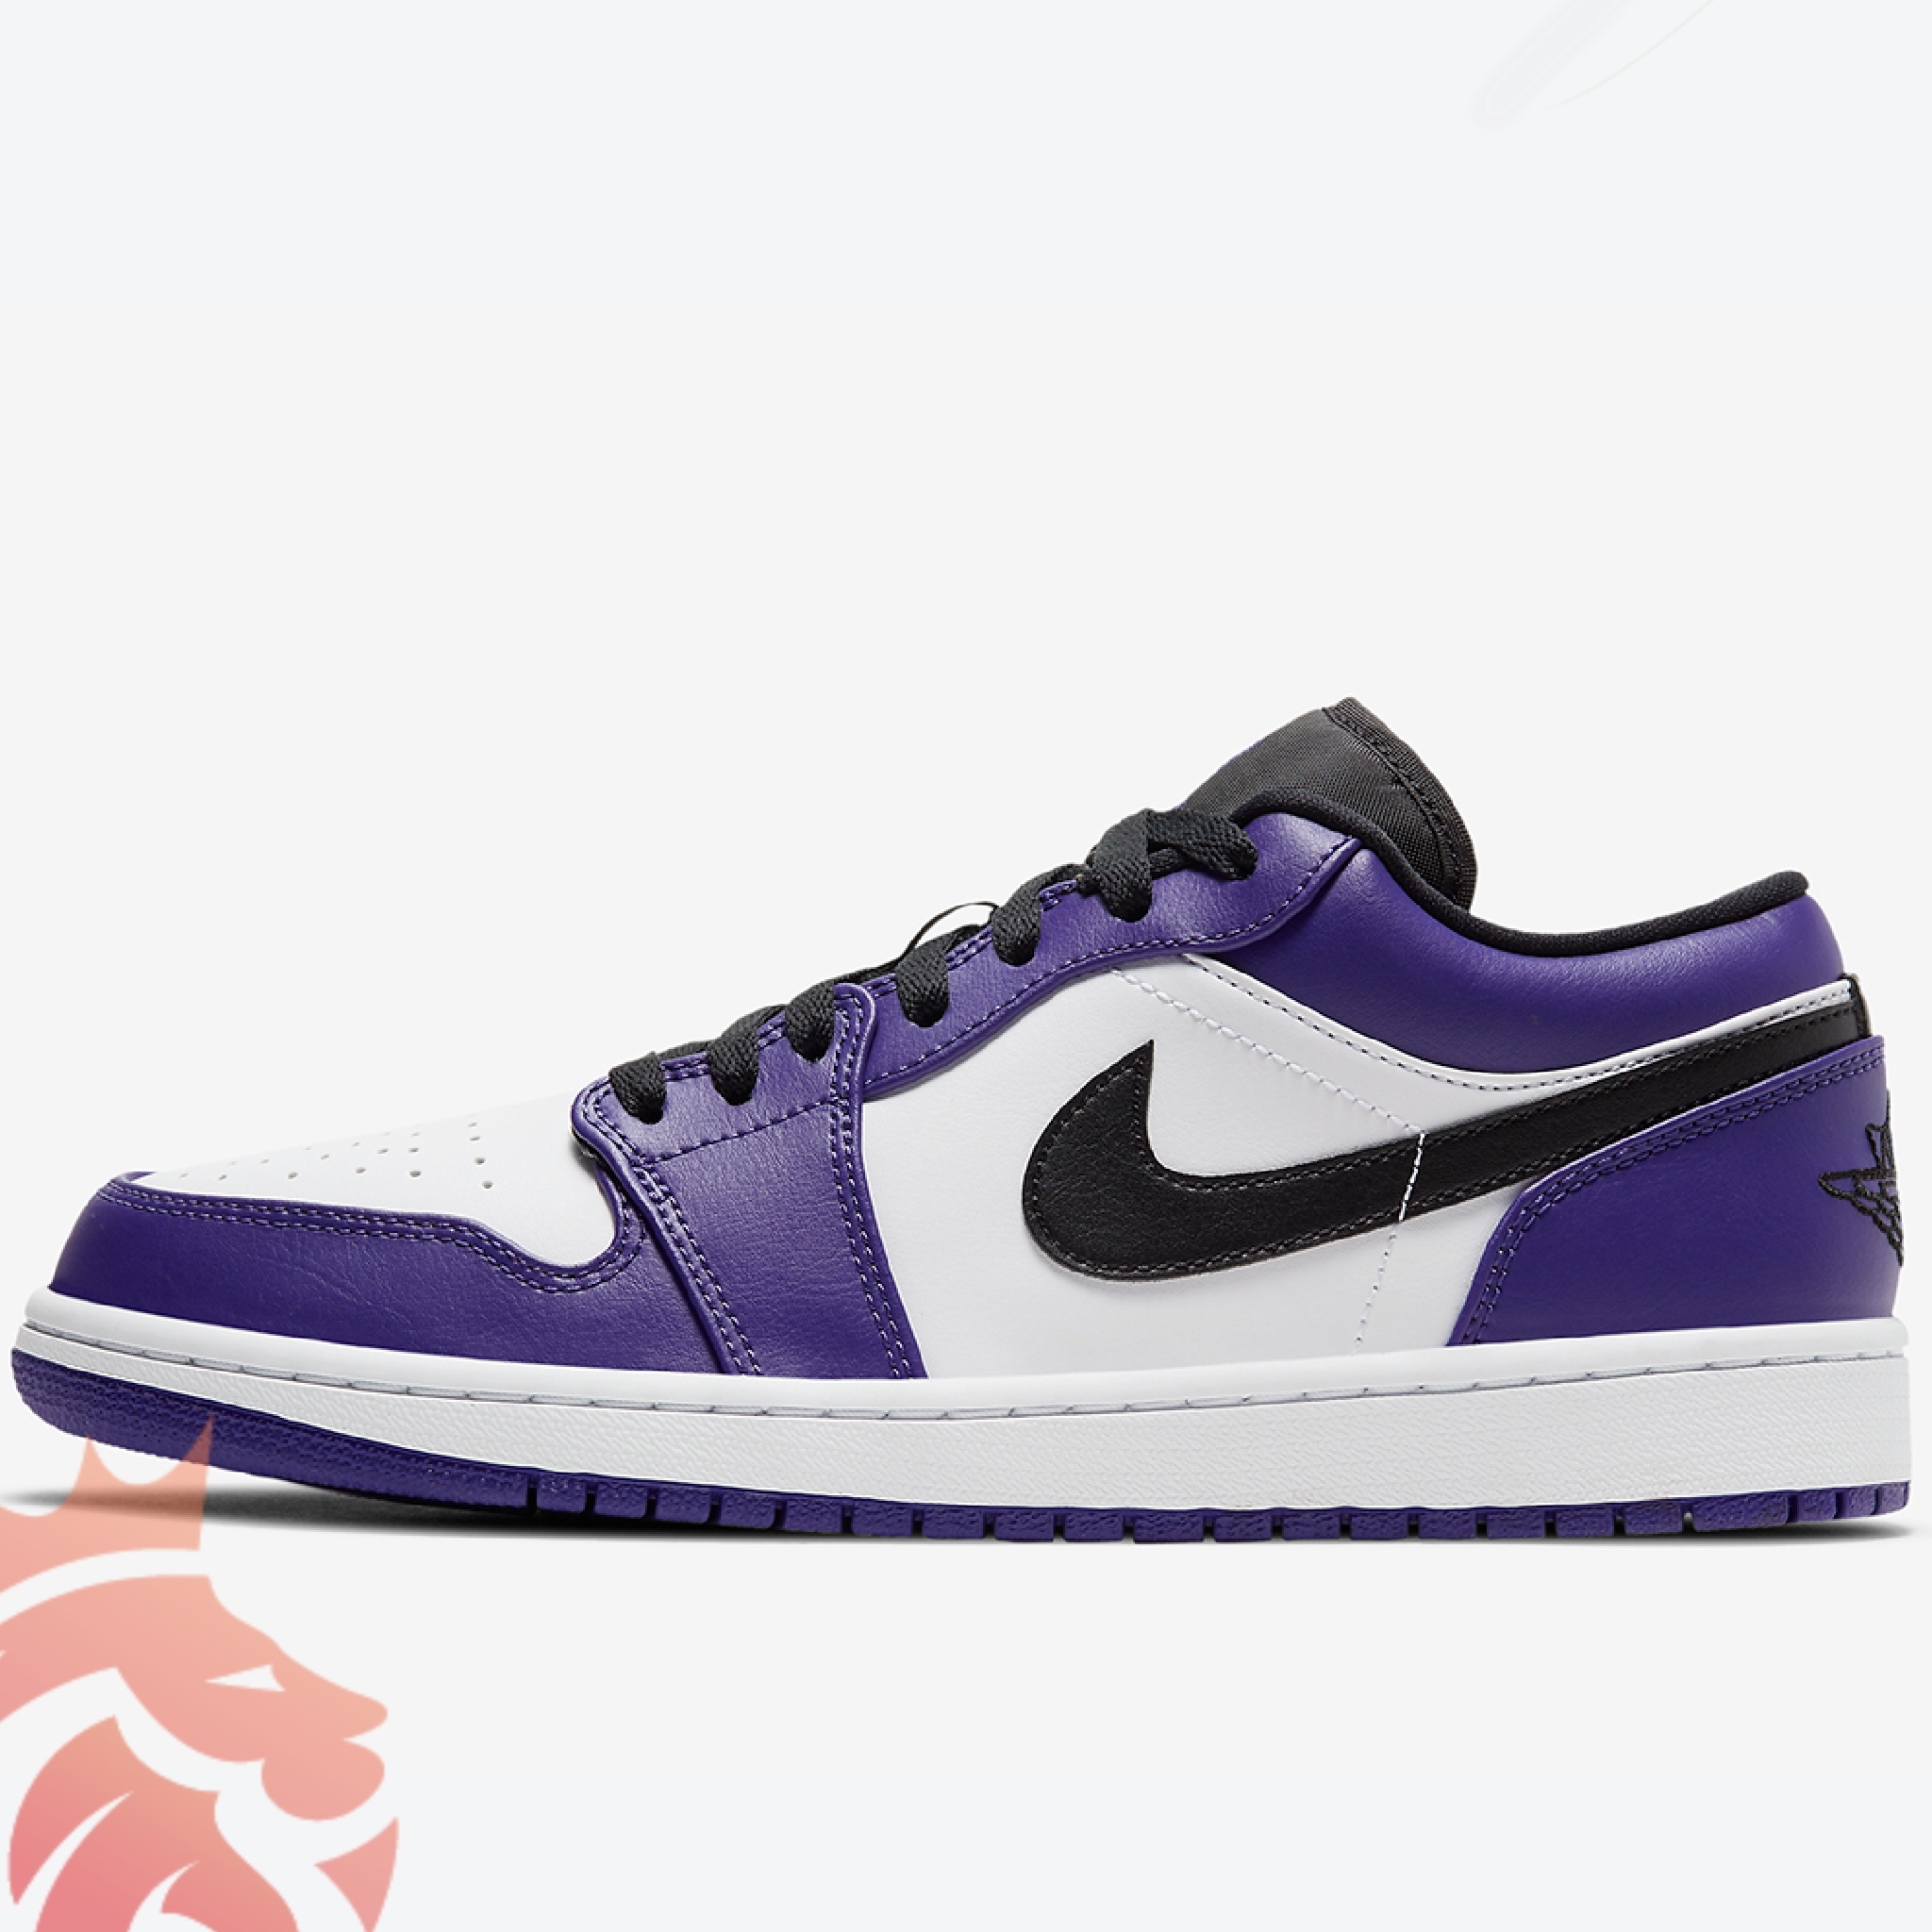 Air Jordan 1 Low 553558-500 White/Court Purple/Black/University Red